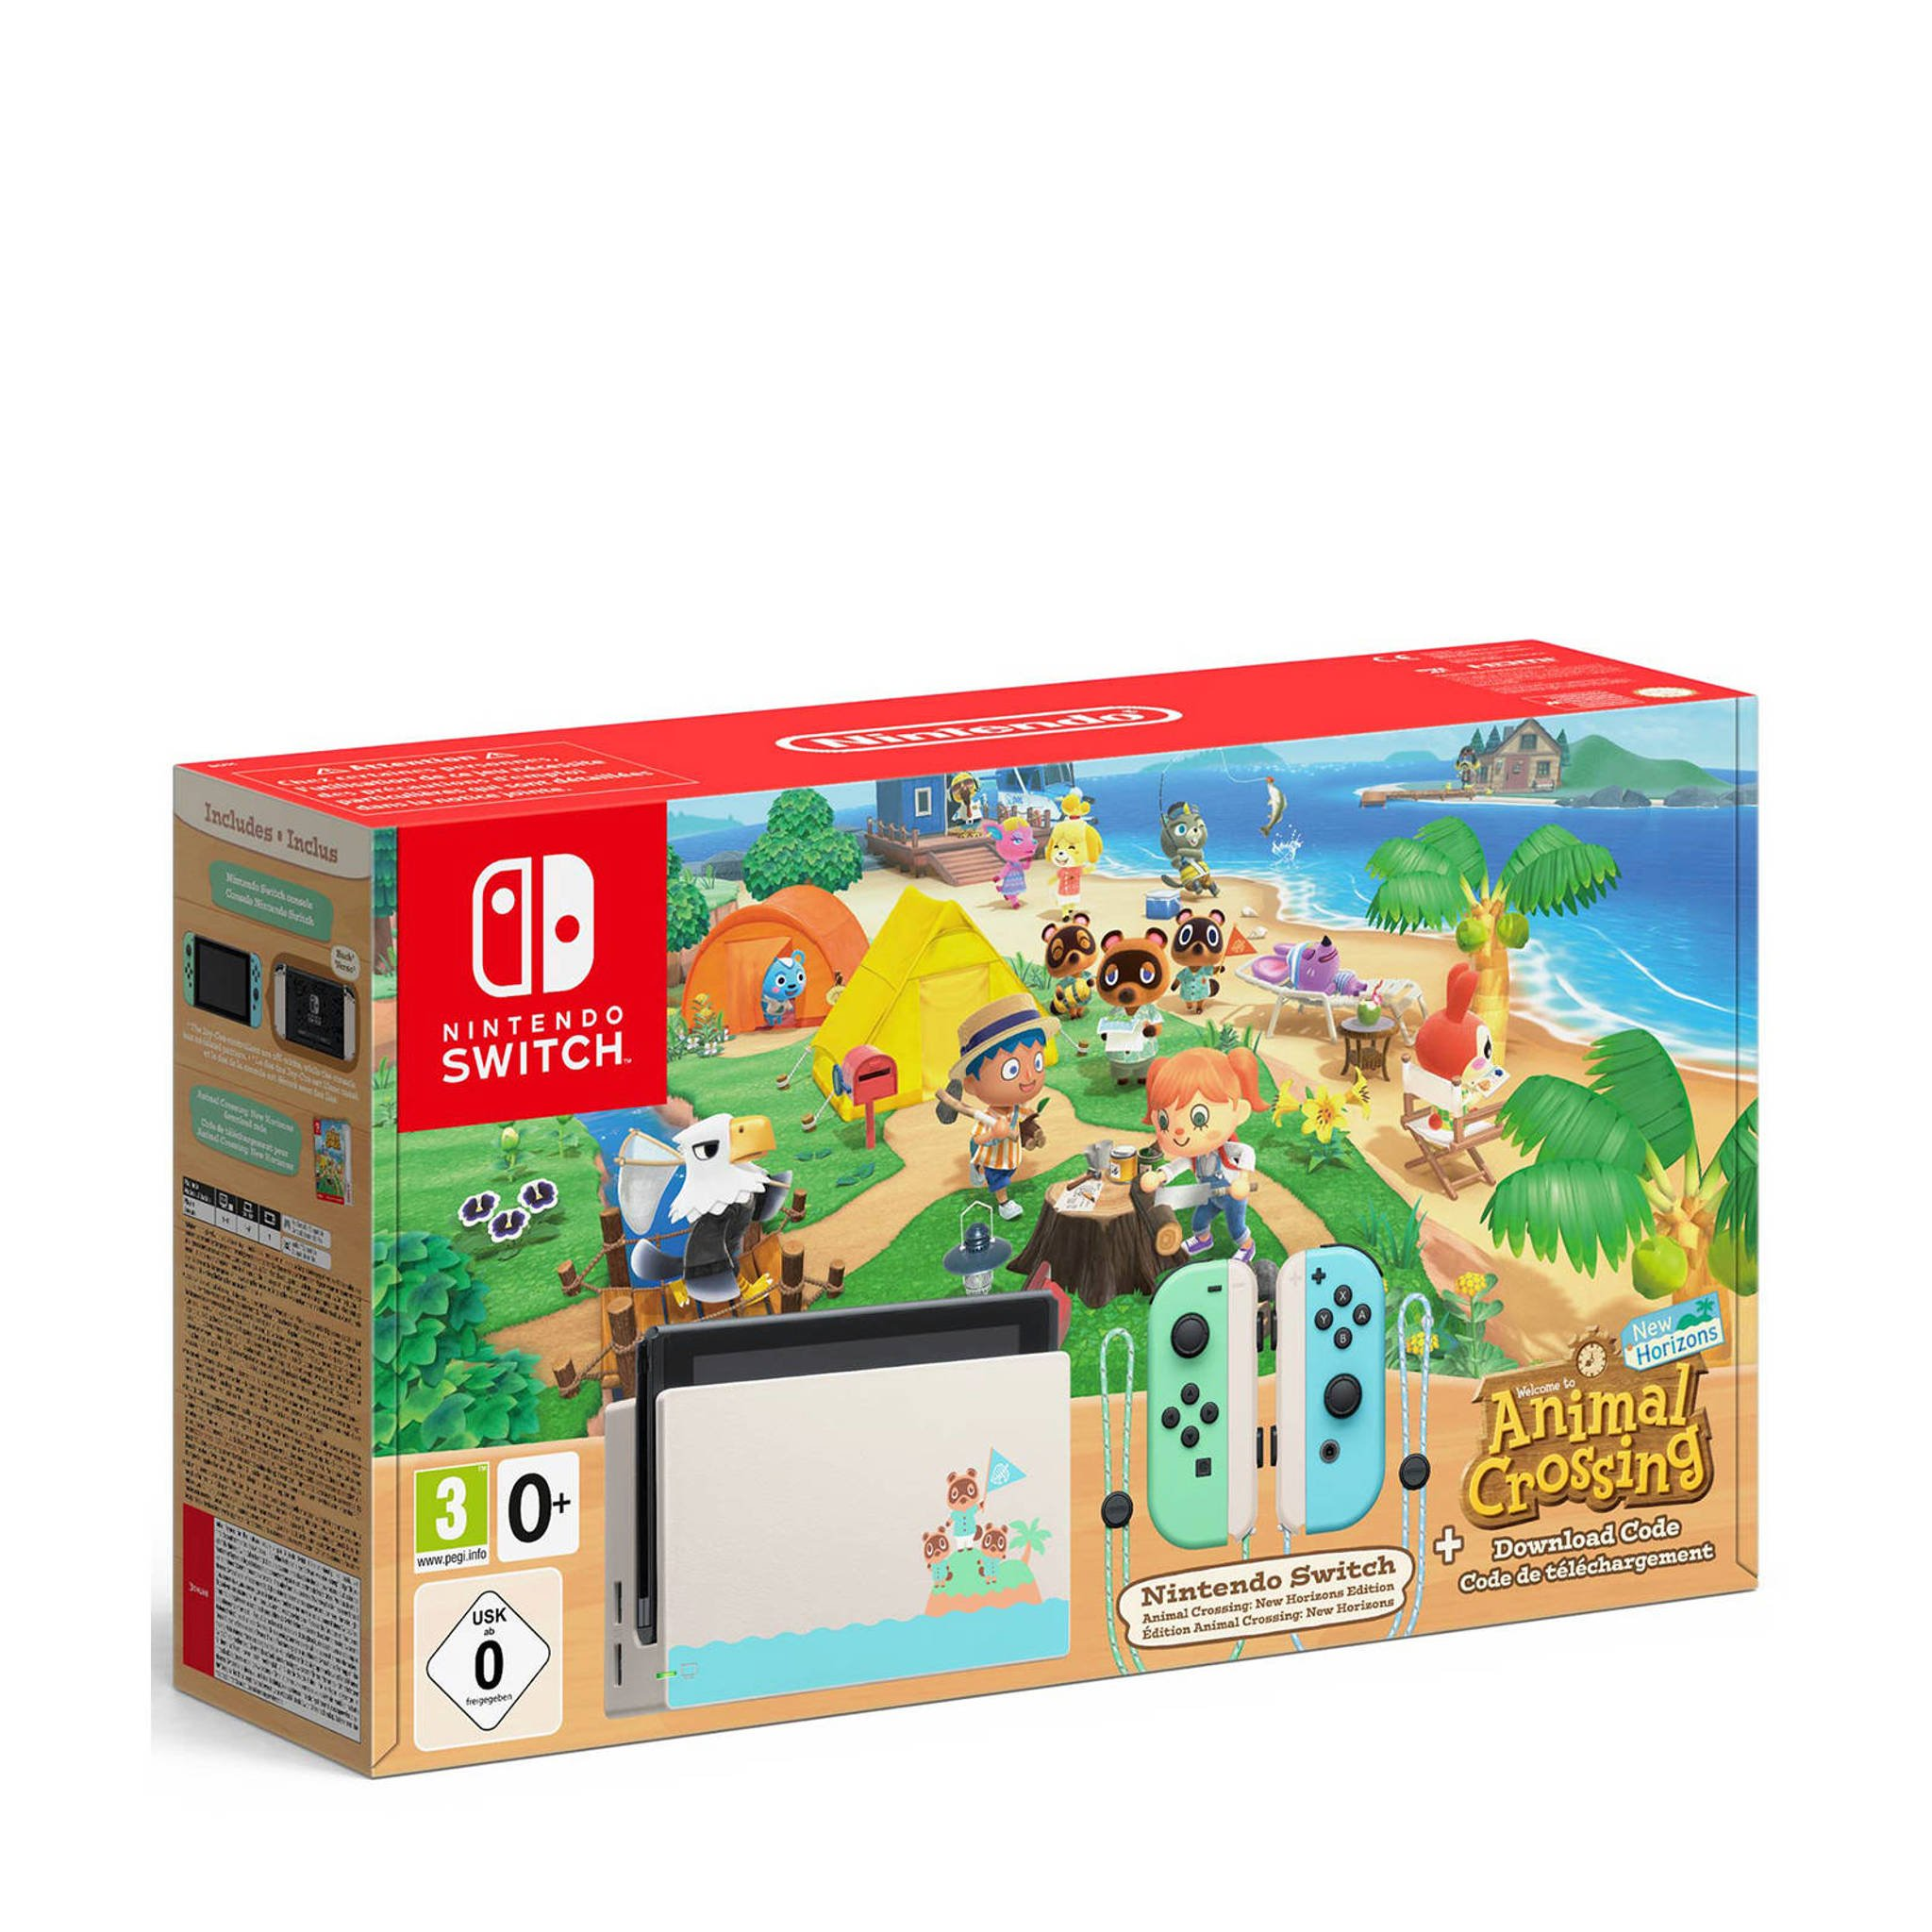 Console Nintendo Switch Animal Crossing New Horizons Edition